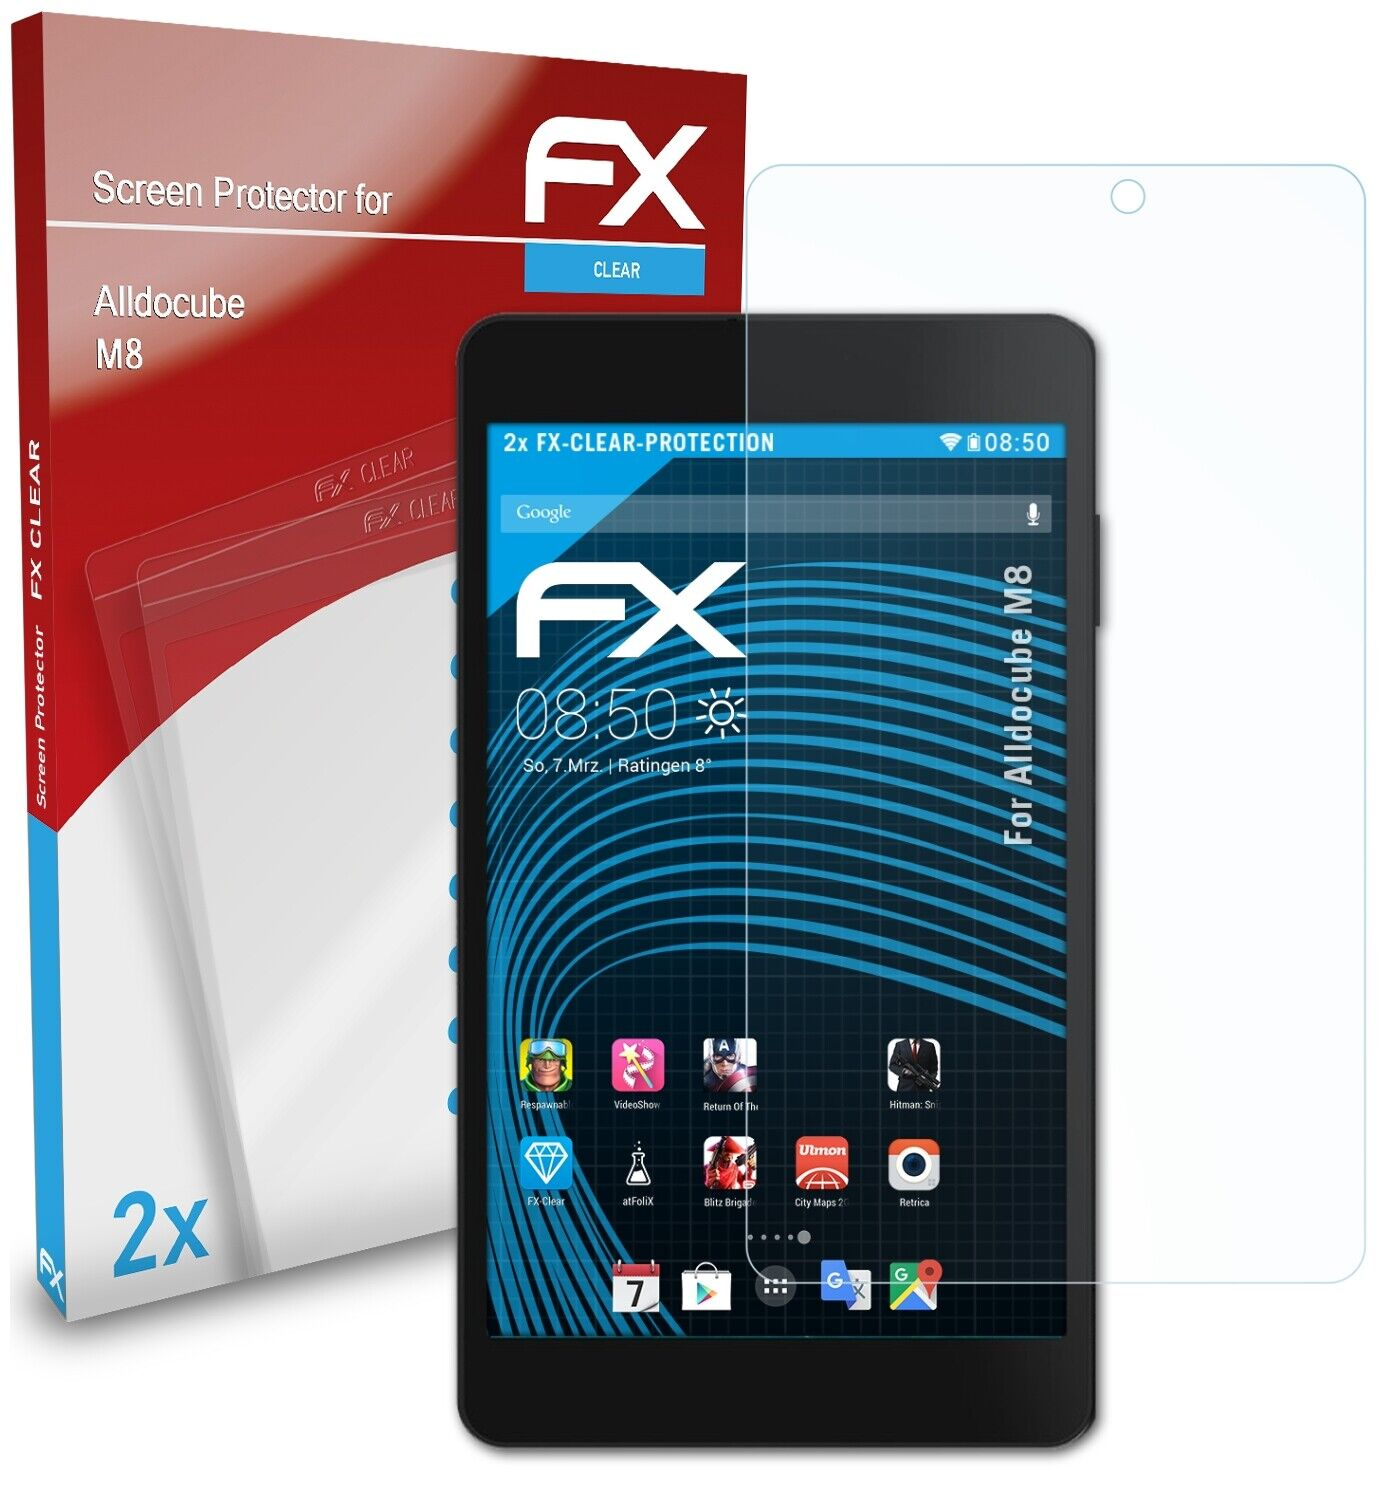 atFoliX 2x Screen Protection Film for Alldocube M8 Screen Protector clear